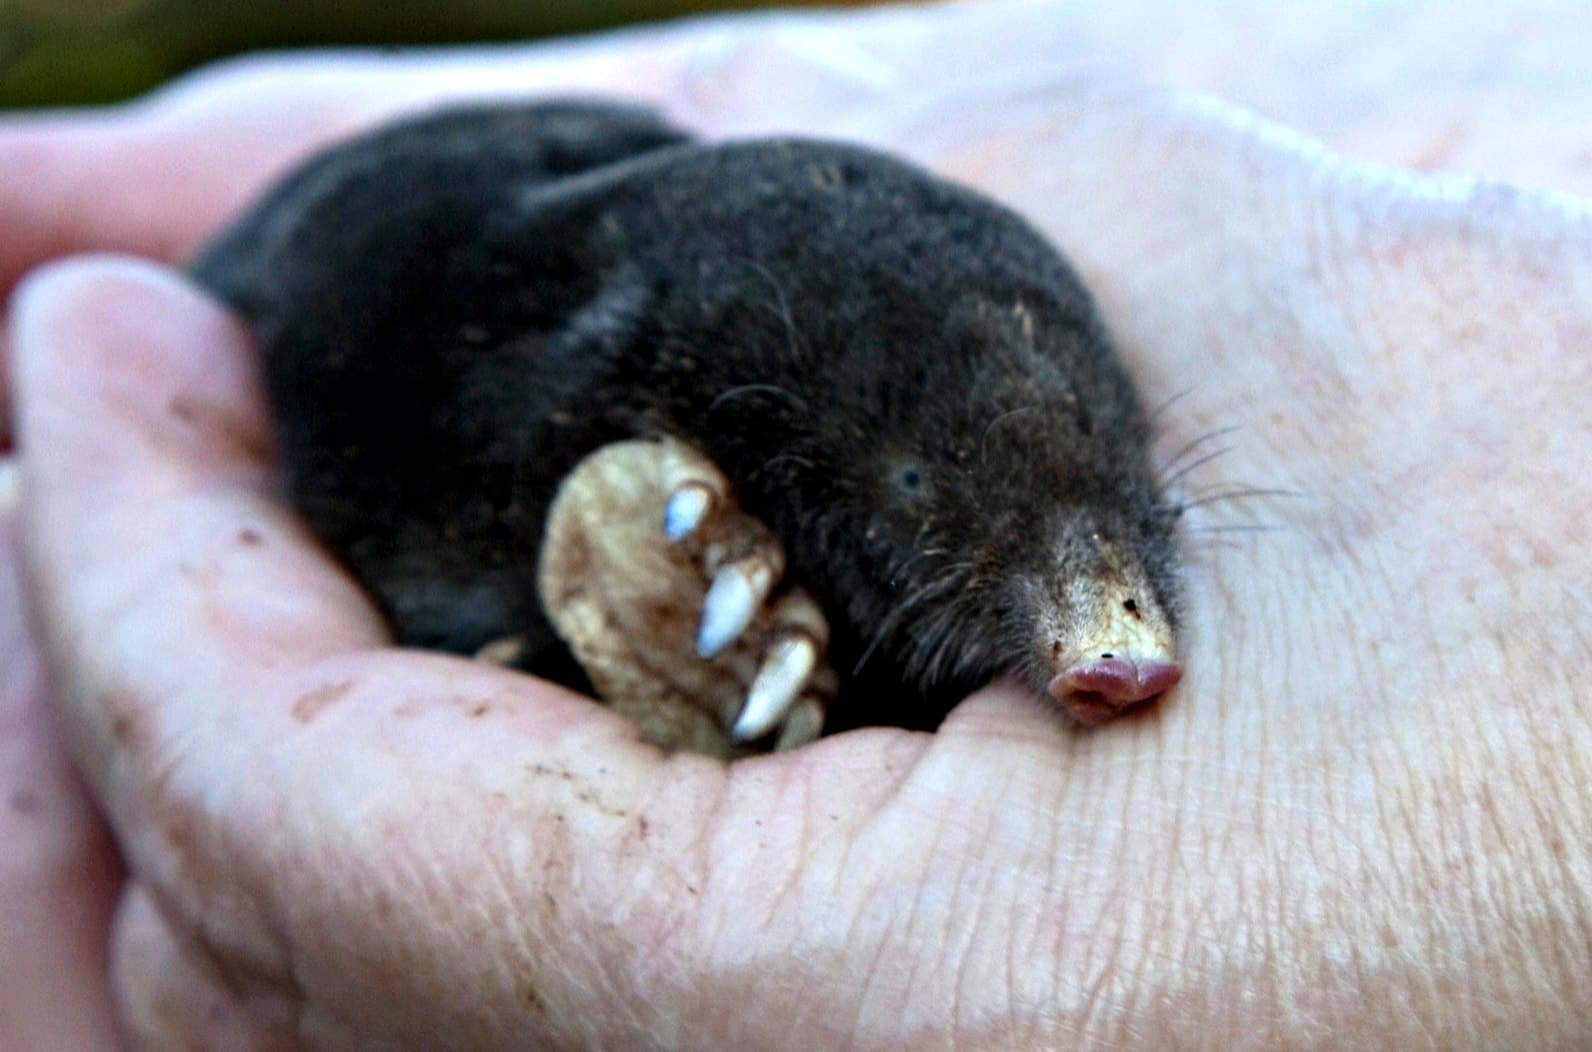 Before you try mole poison, please try the more humane methods of ground mole removal first.